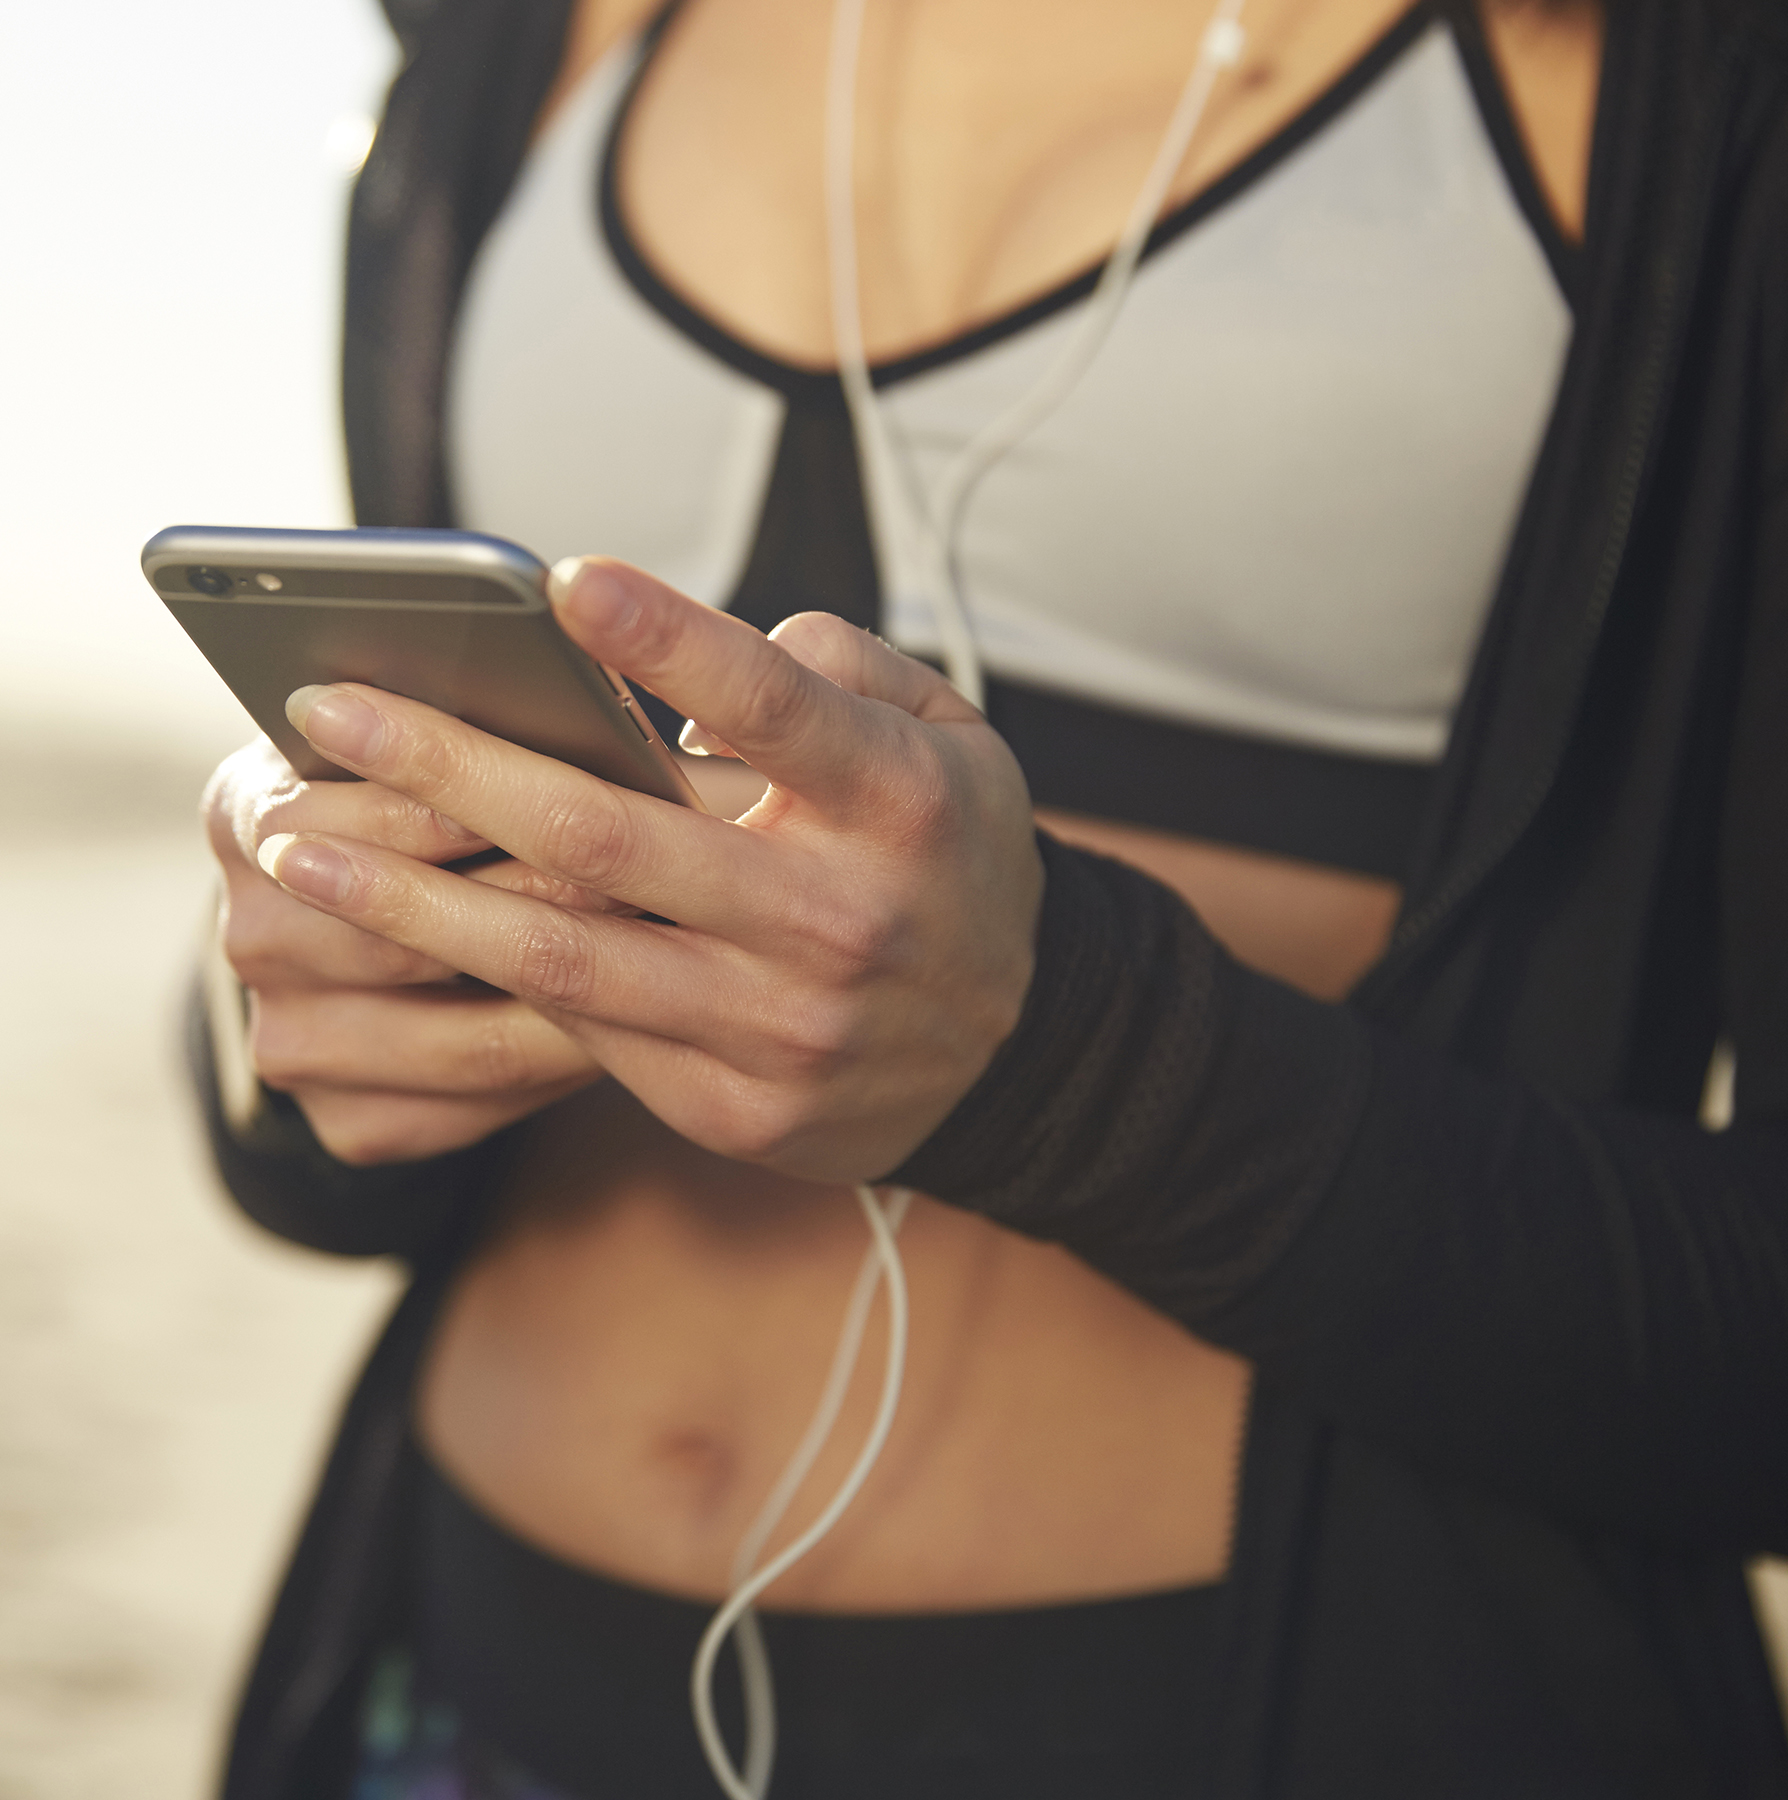 Running in sports bra with iphone